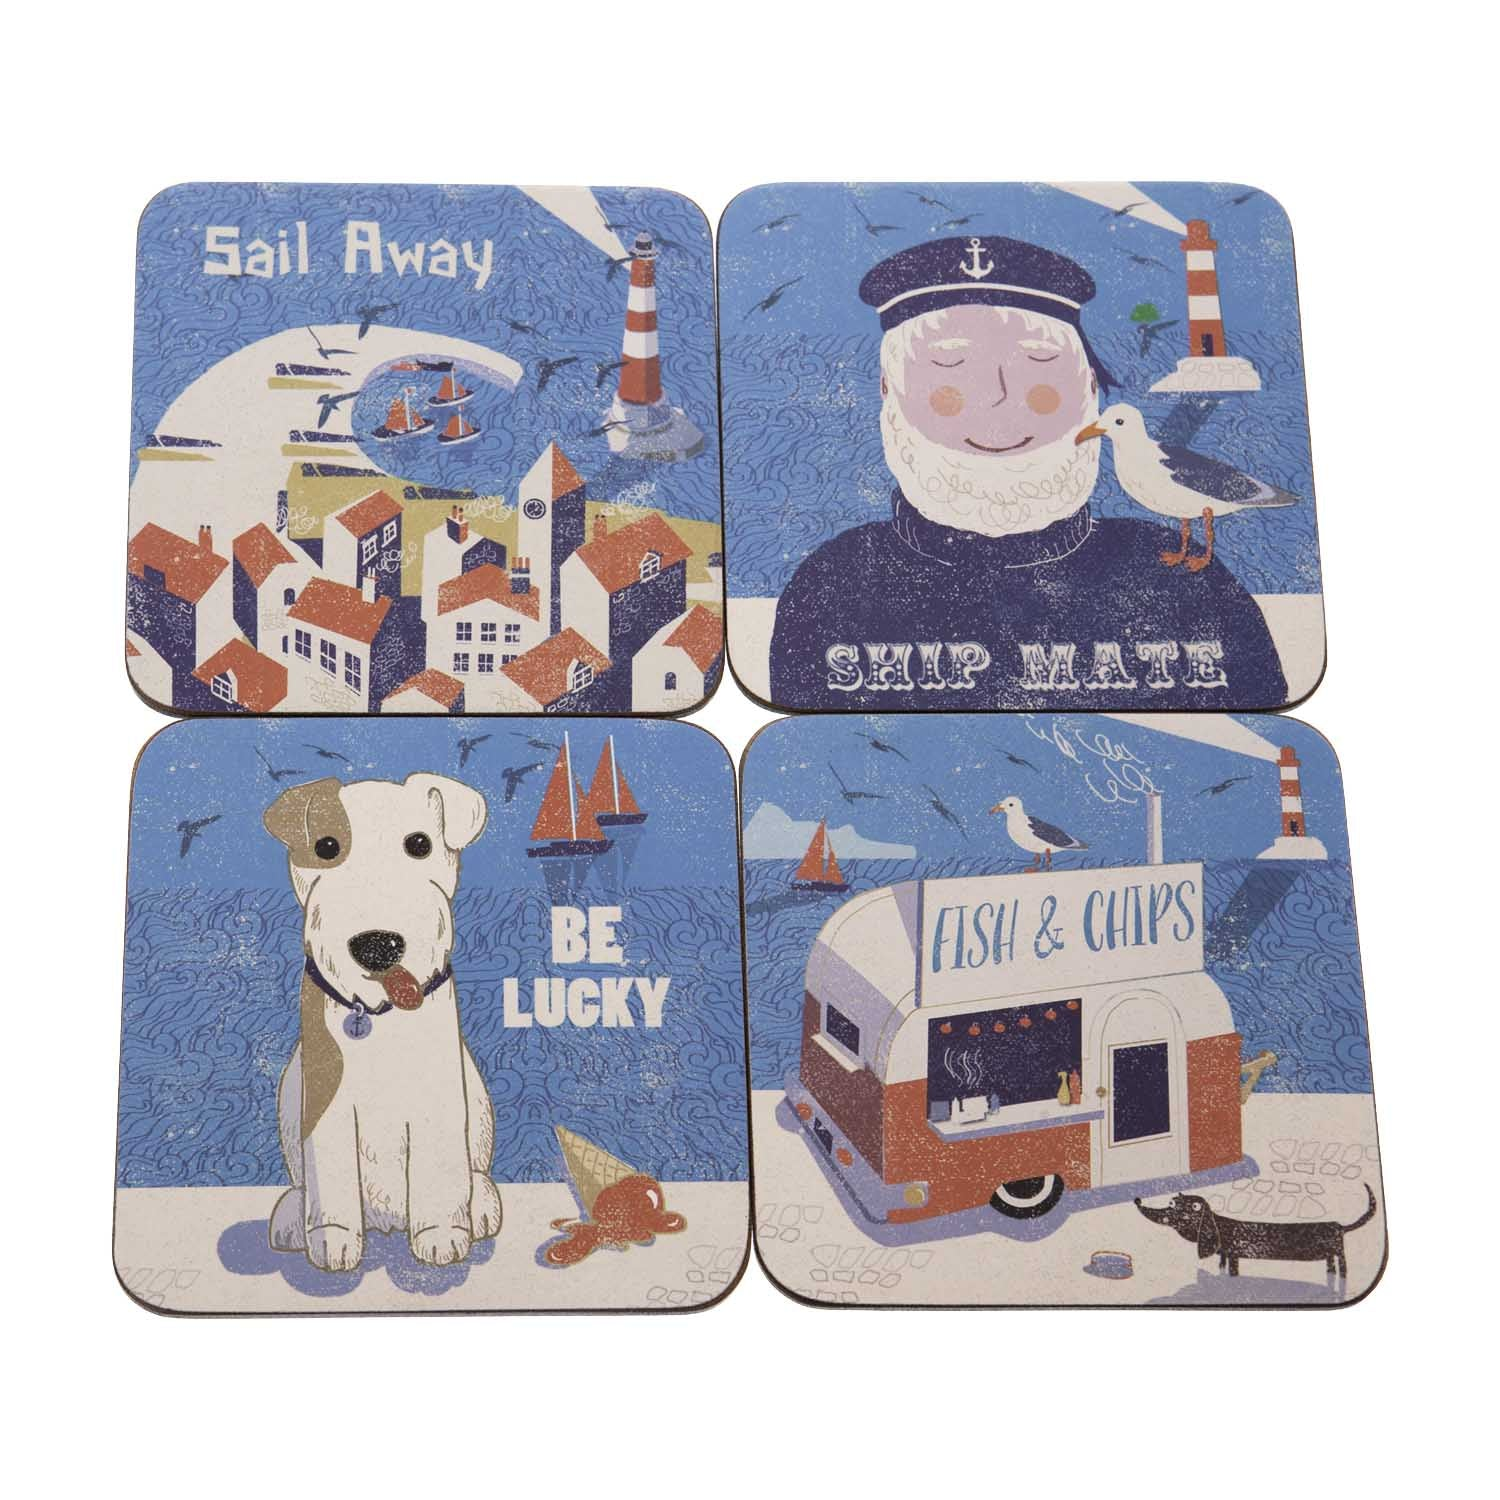 Dog Lover Gifts available at Dog Krazy Gifts – Jill White Rocket68 Ahoy Coasters available at www.dogkrazygifts.co.uk